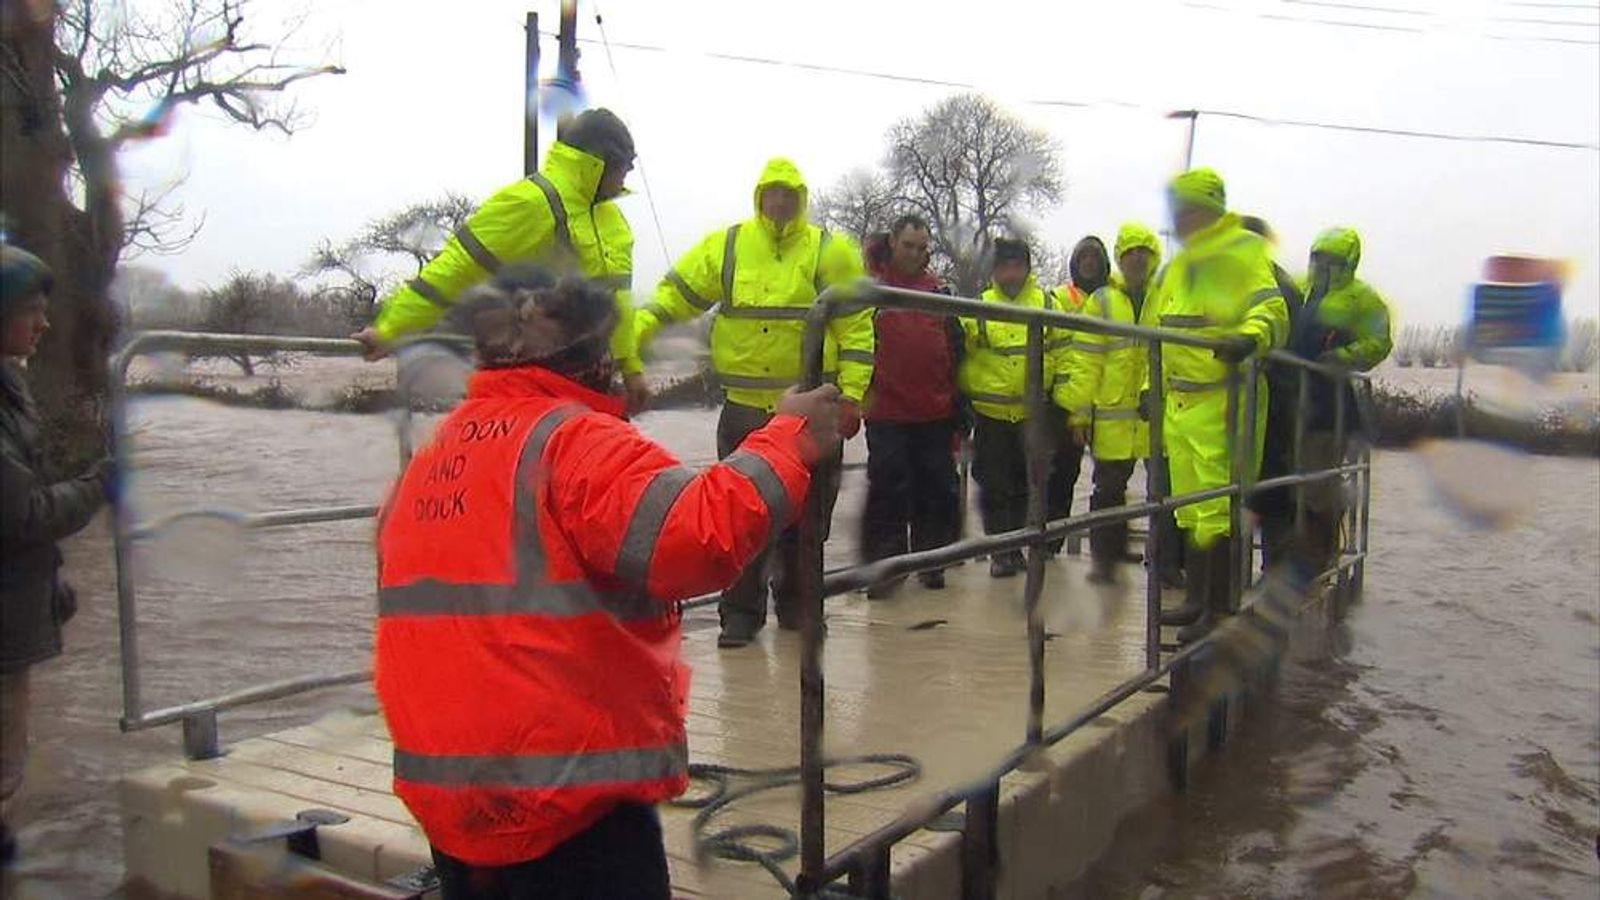 Volunteers build a pontoon to travel across Somerset Levels